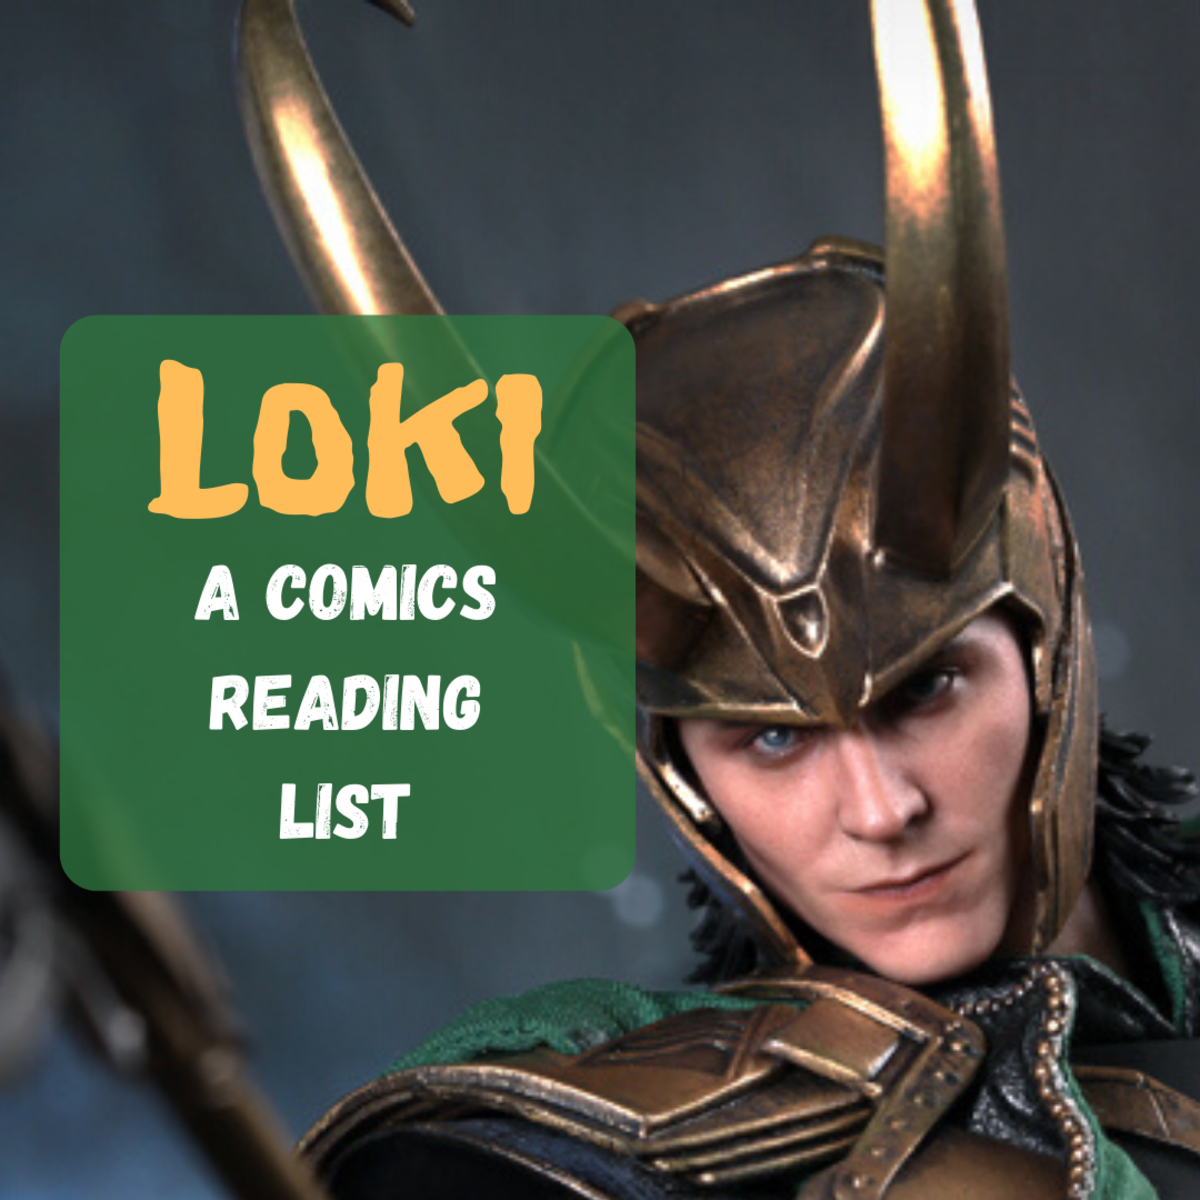 Are you a huge Loki fan but new to comics? This guide provides a chronological reading list of comics featuring everyone's favorite god of mischief.